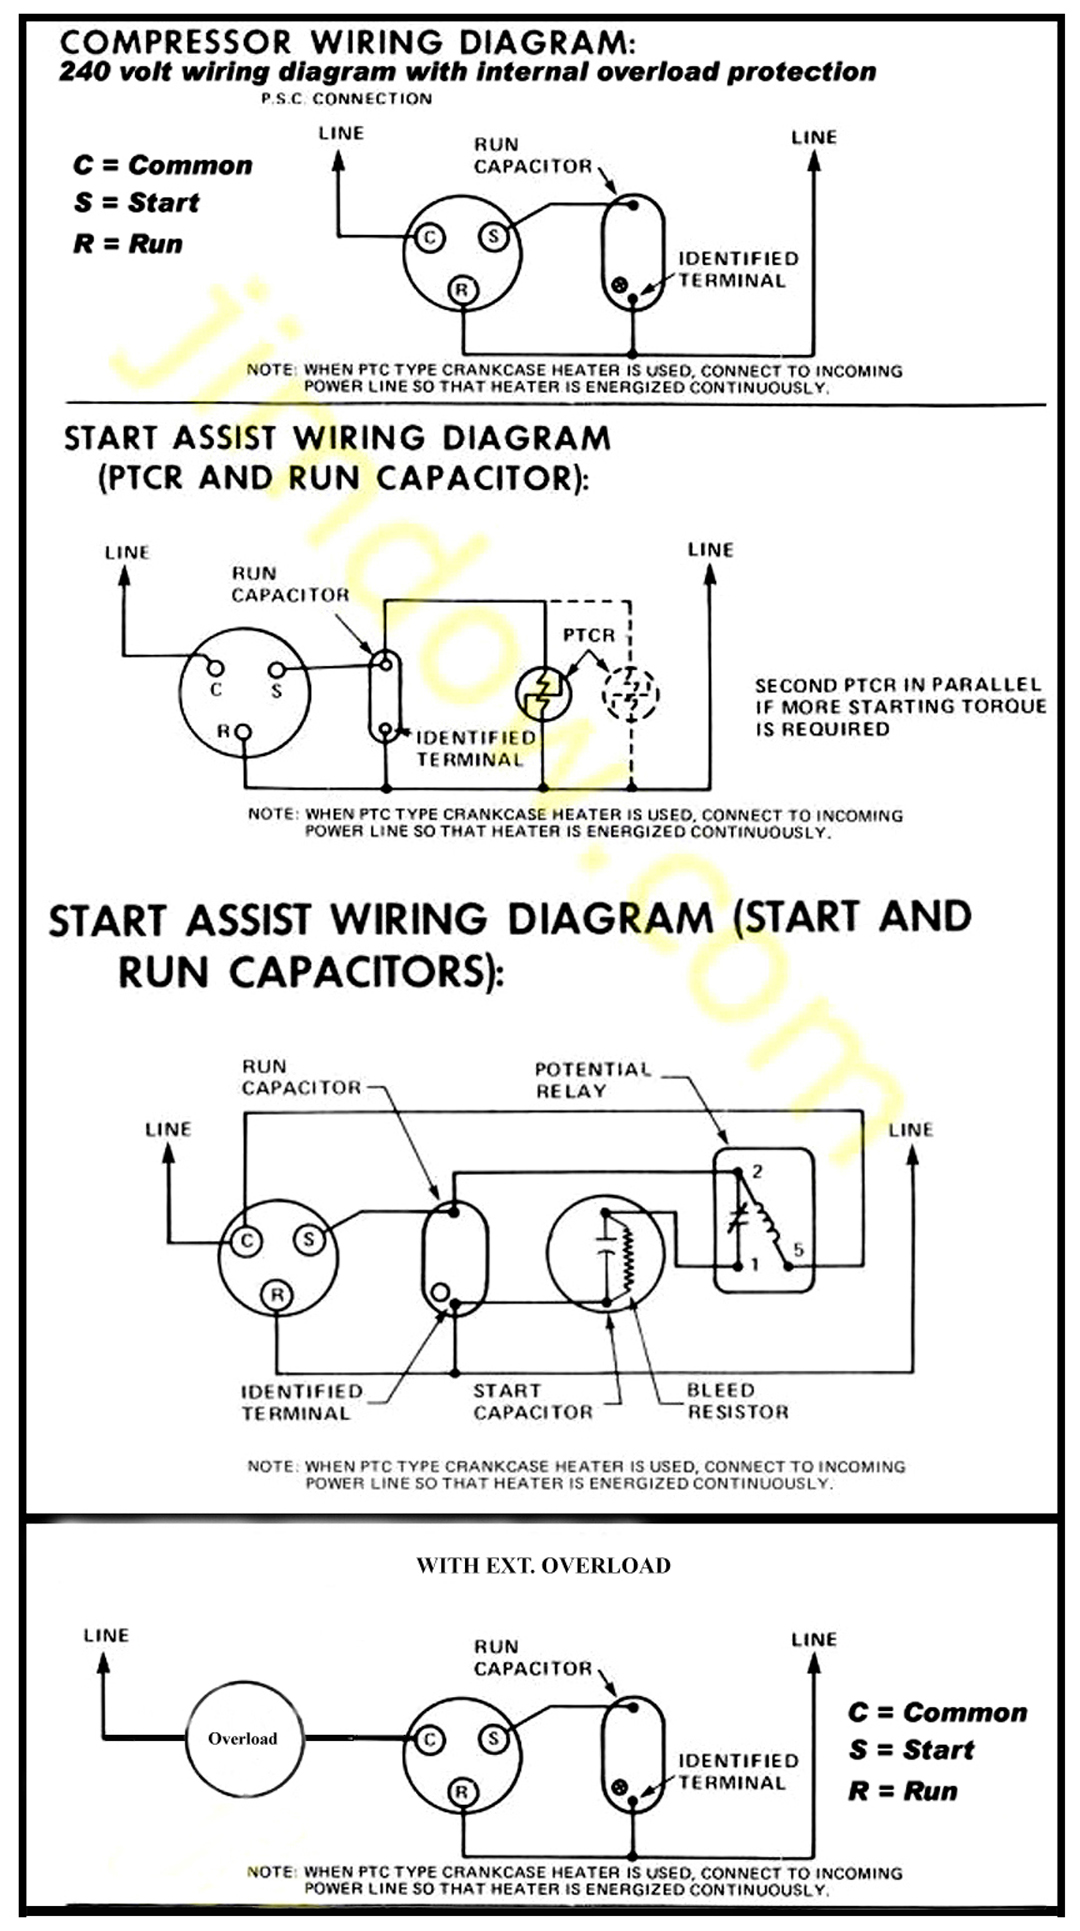 Air conditioning (push control switch type) and electric tension reducer wiring diagram below shows the wiring connection applies for the Toyota Camry model